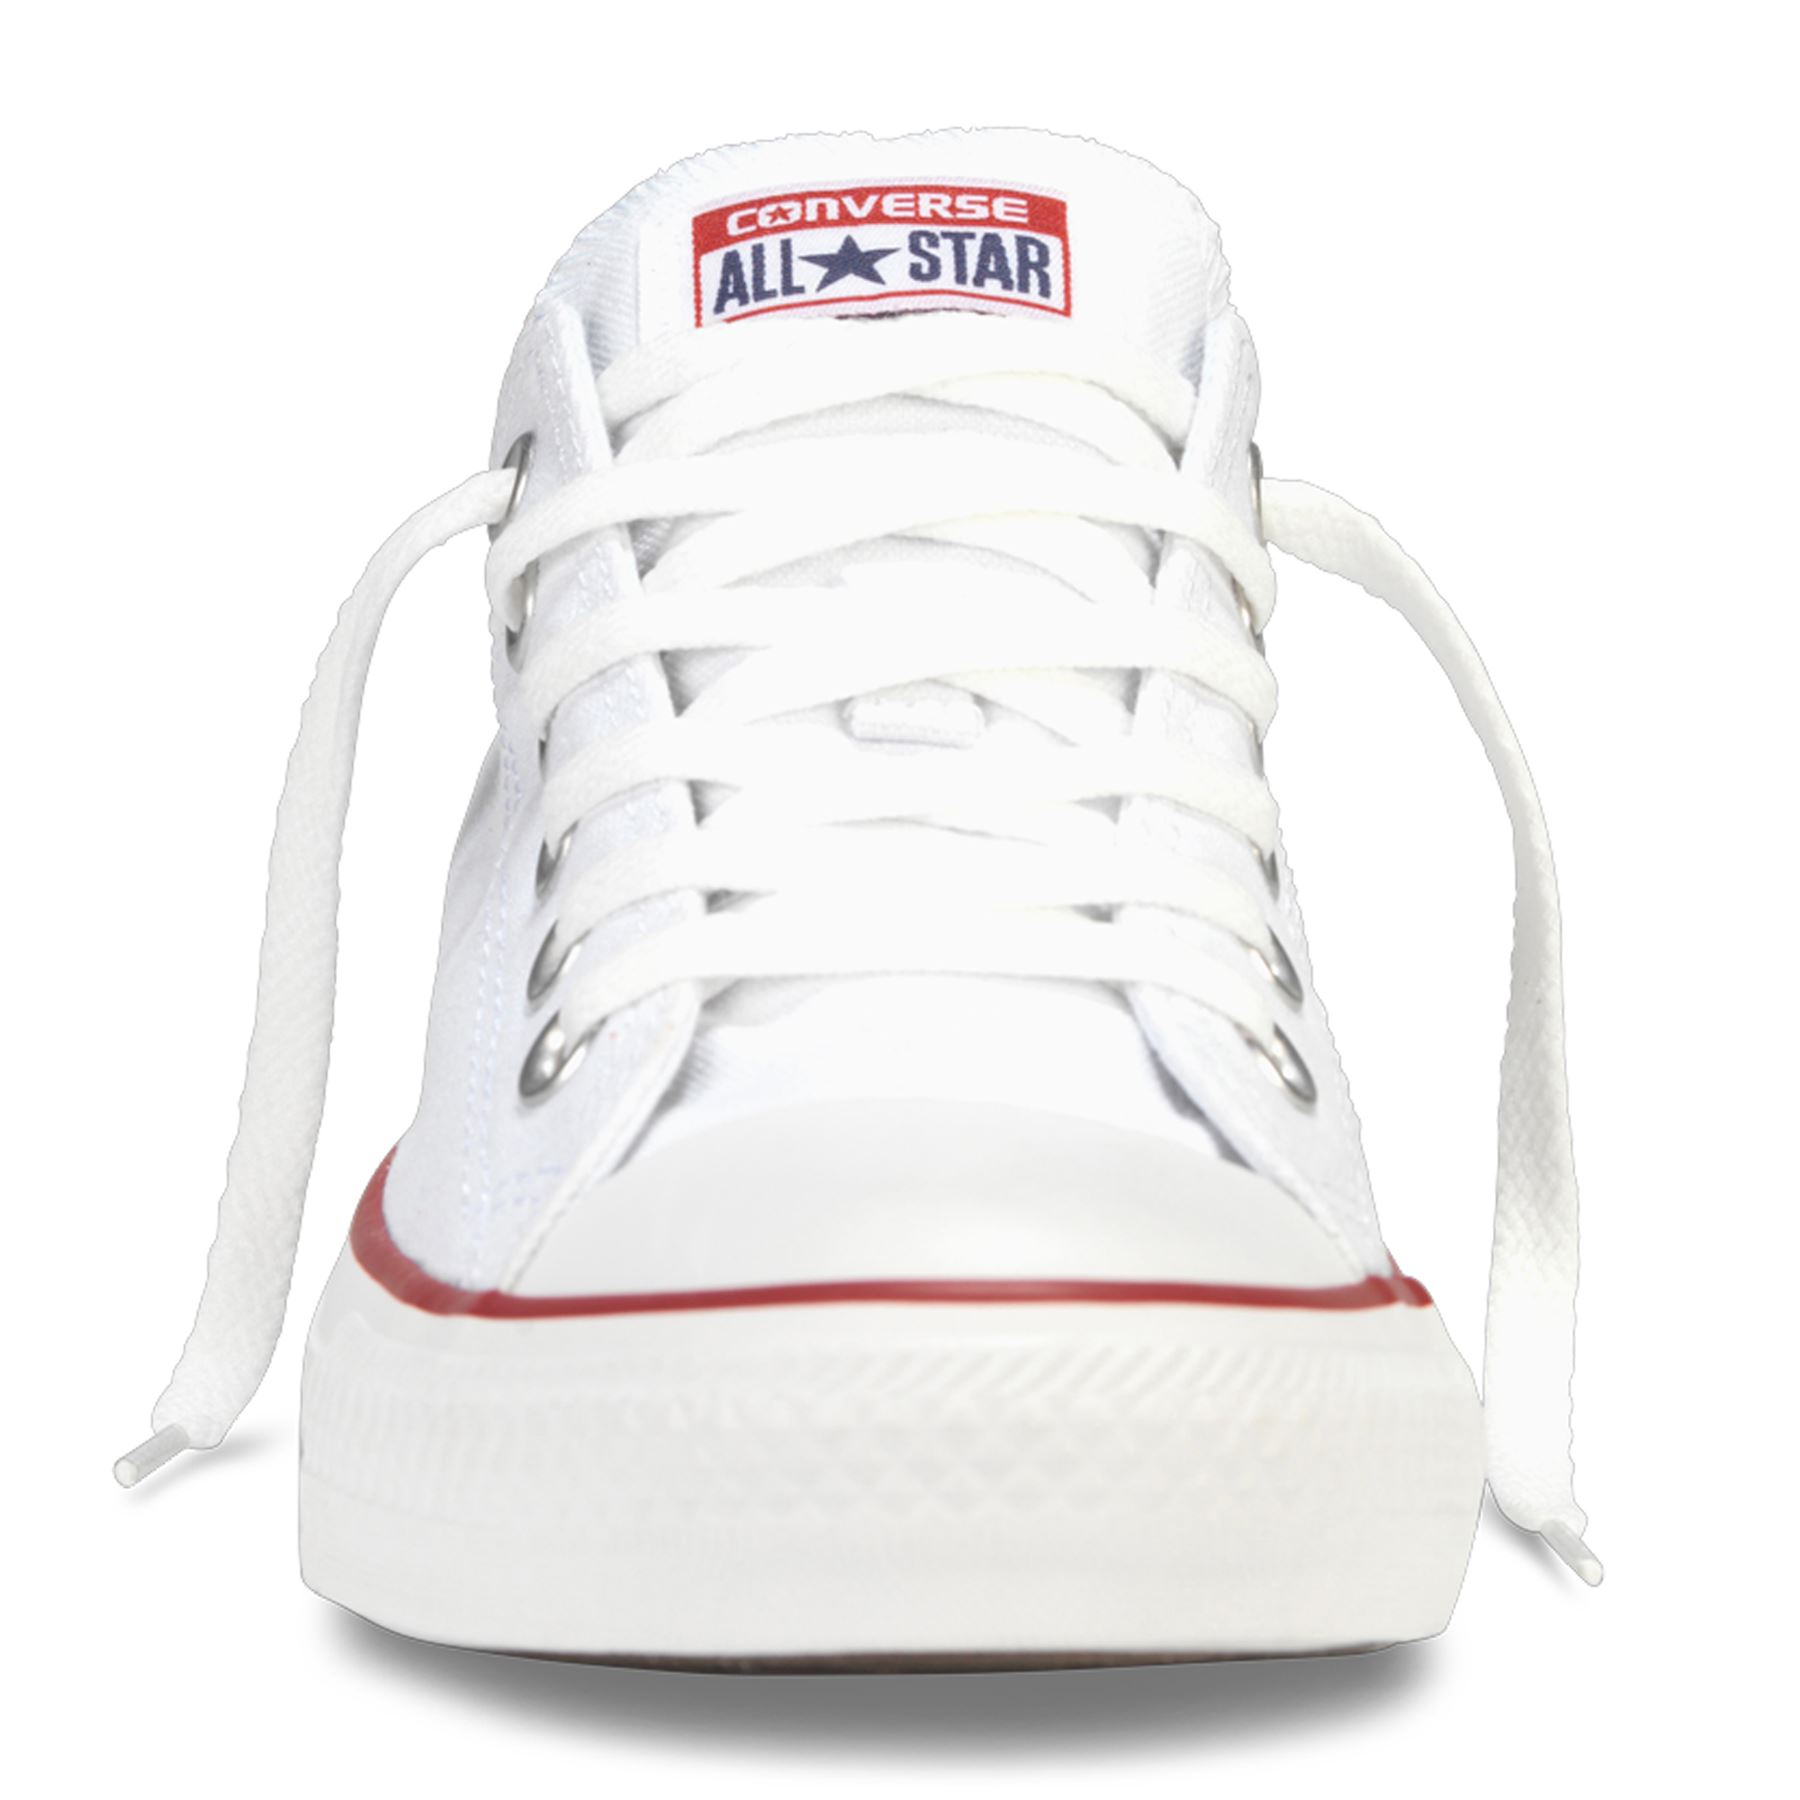 Converse-All-Star-Unisex-Chuck-Taylor-New-Mens-Womens-Low-Tops-Trainers-Pumps thumbnail 31